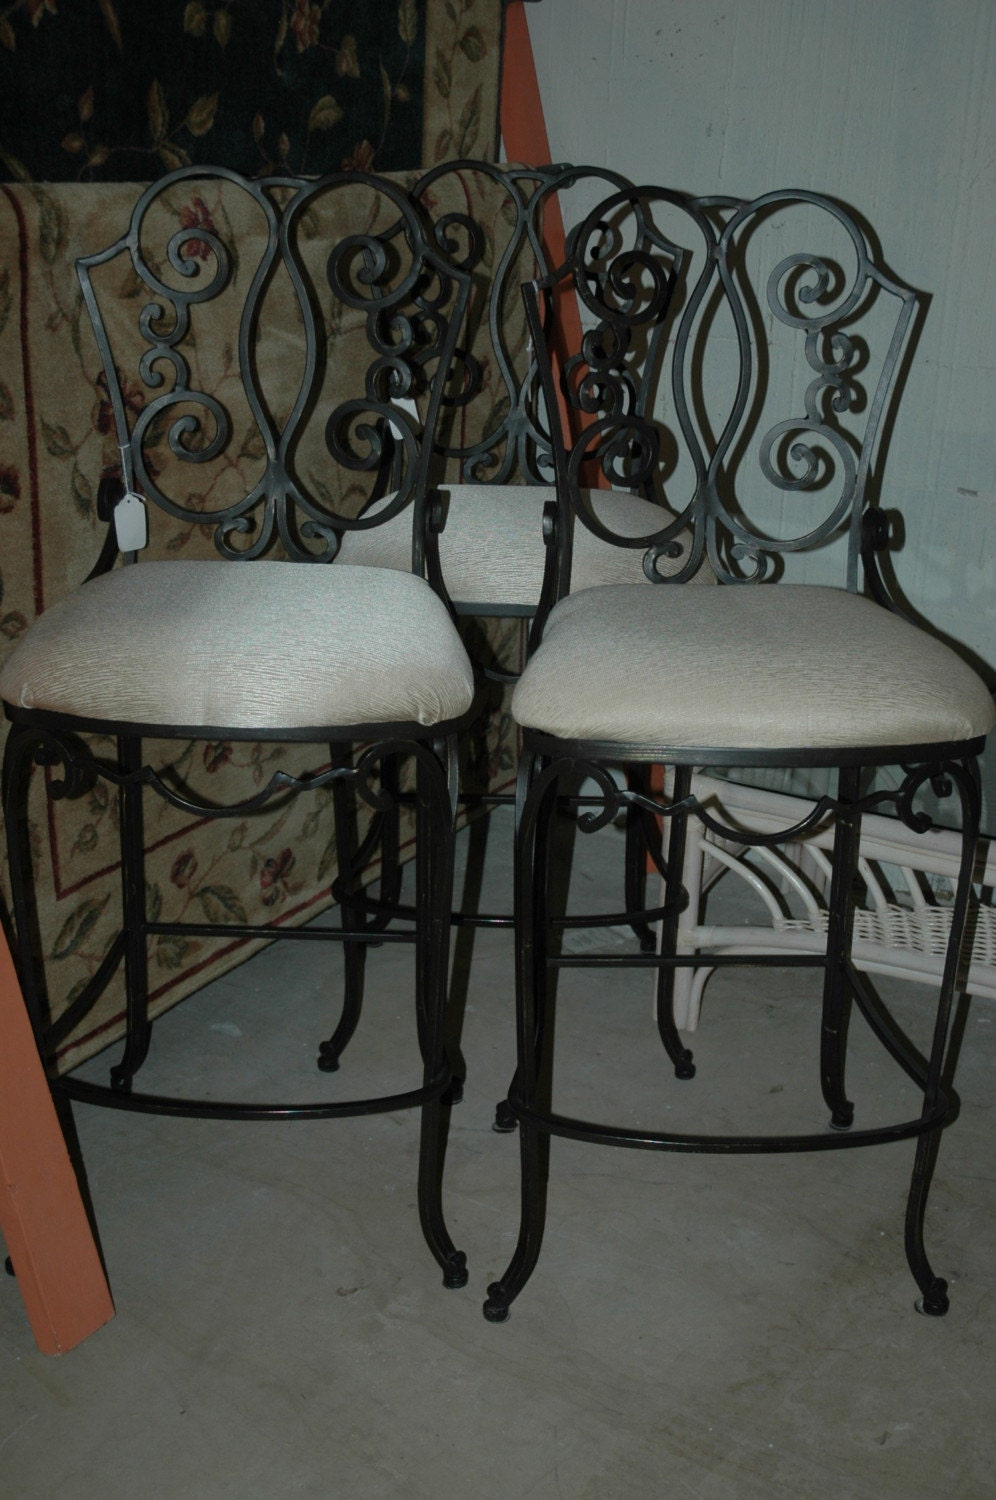 3 Scrolled Heavy Wrought Iron Bar Stools By Eclecticcreashuns